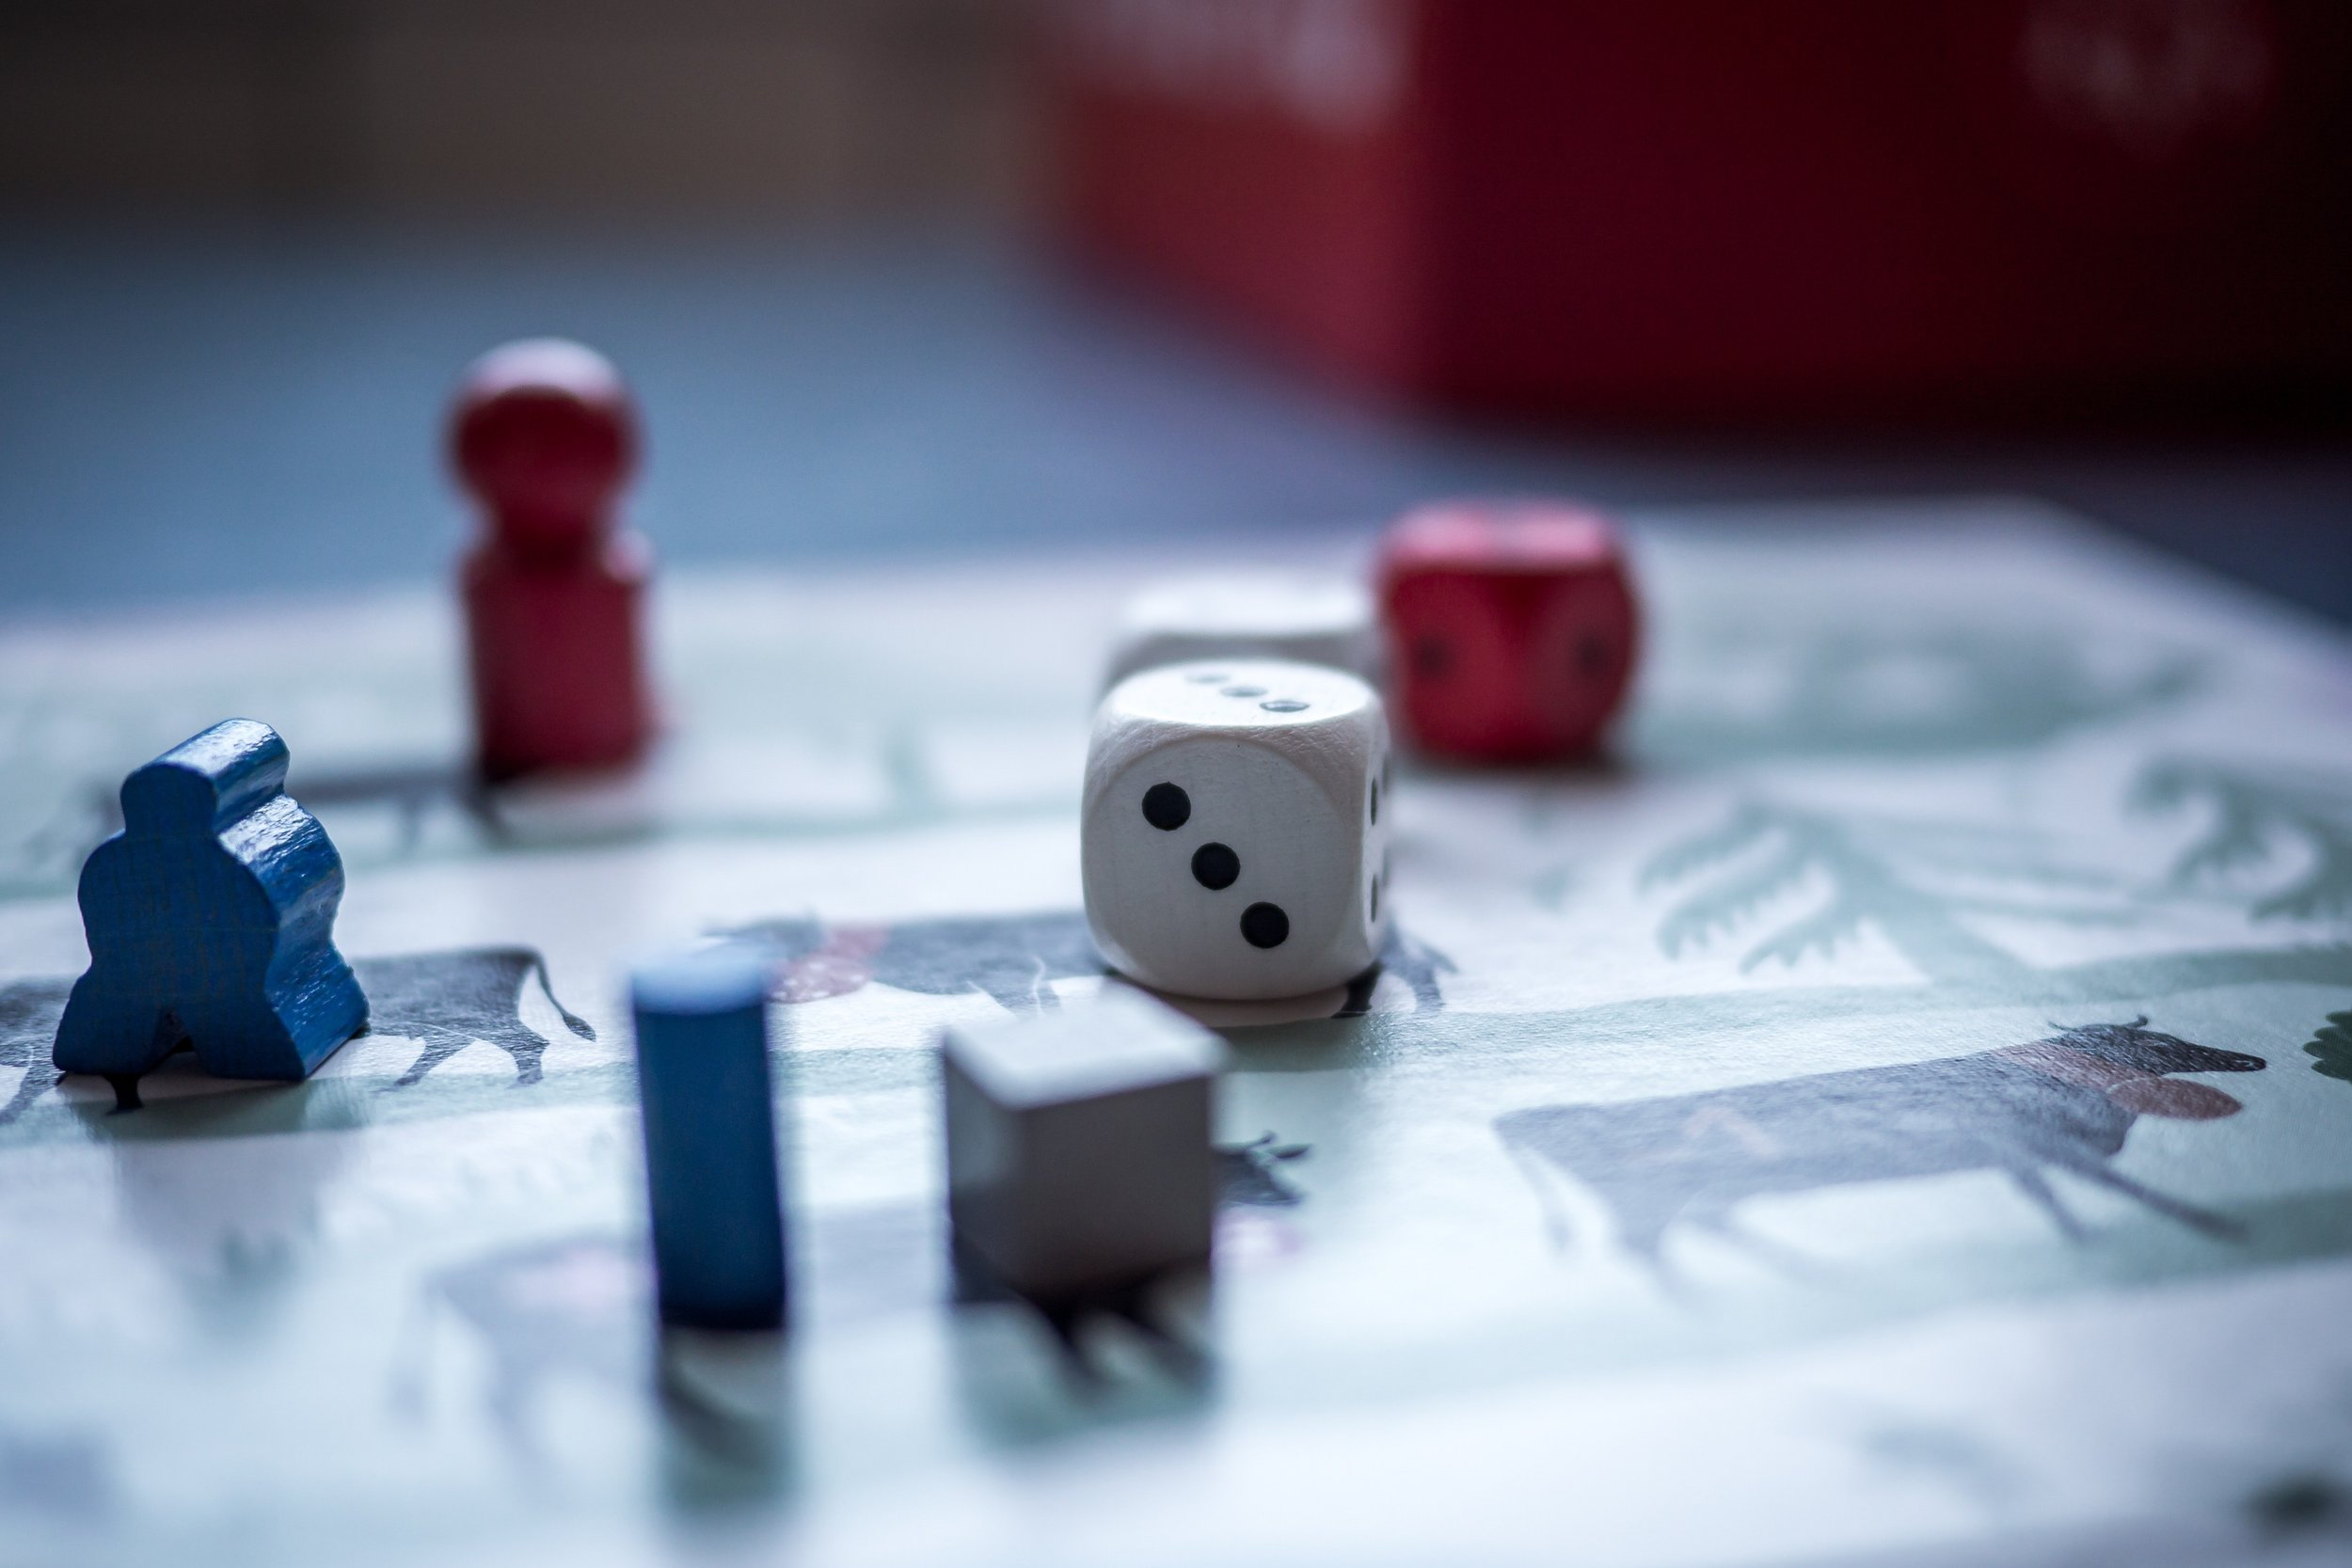 blur-board-game-business-278918.jpg